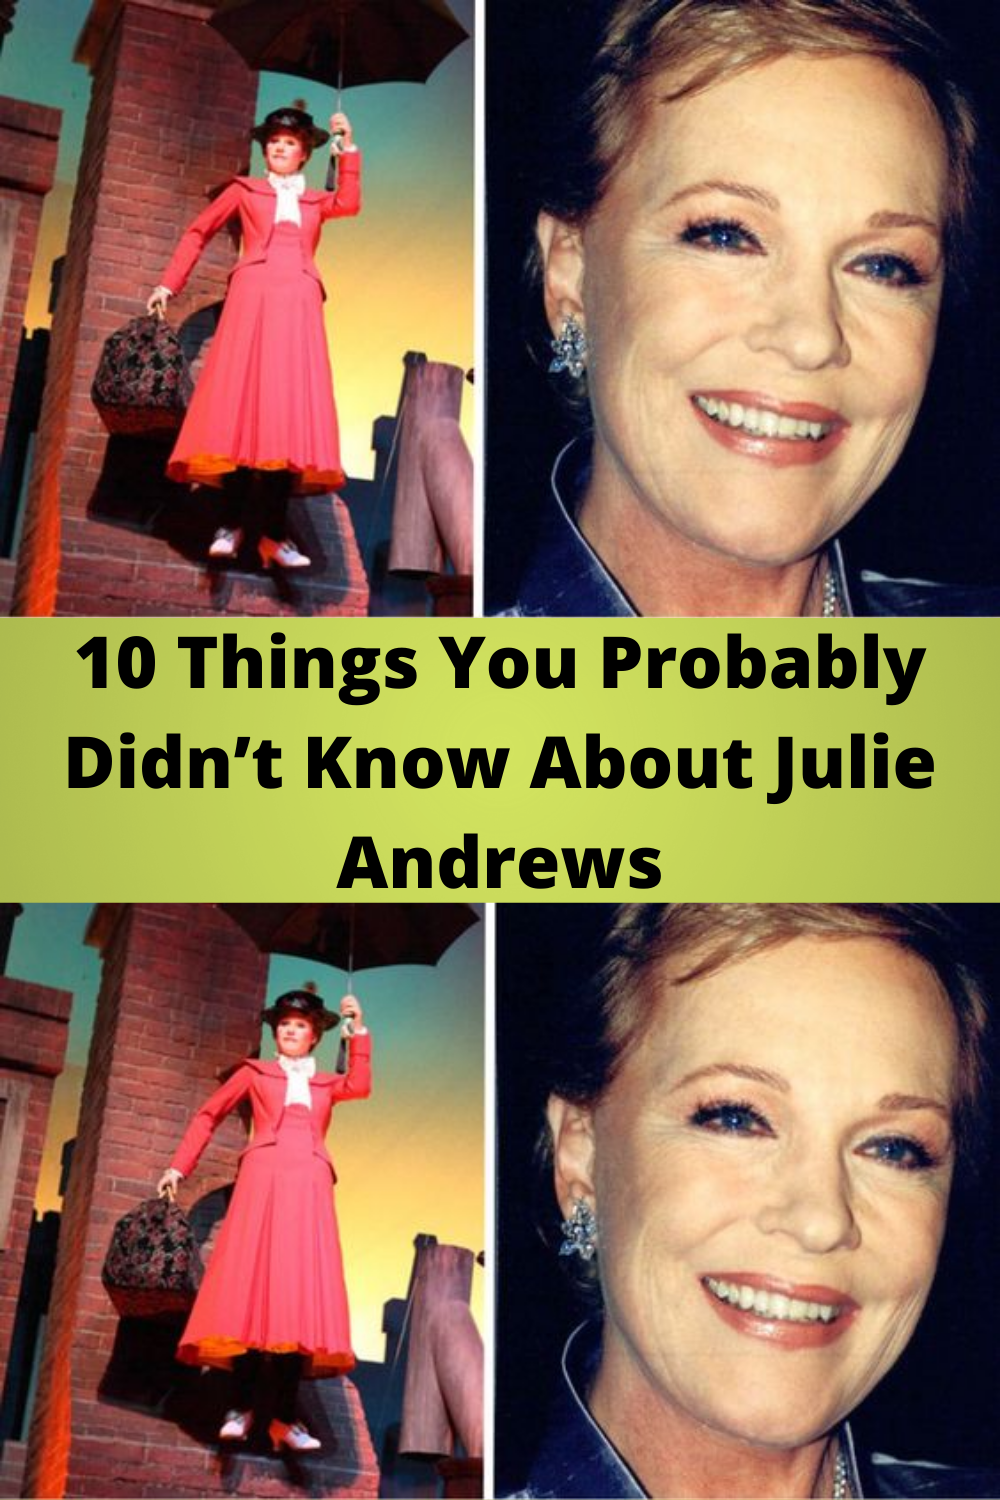 10 Things you probably didn't know about Julie Andrews in 2020 | Spotlight  stories, Wtf funny, Women stories